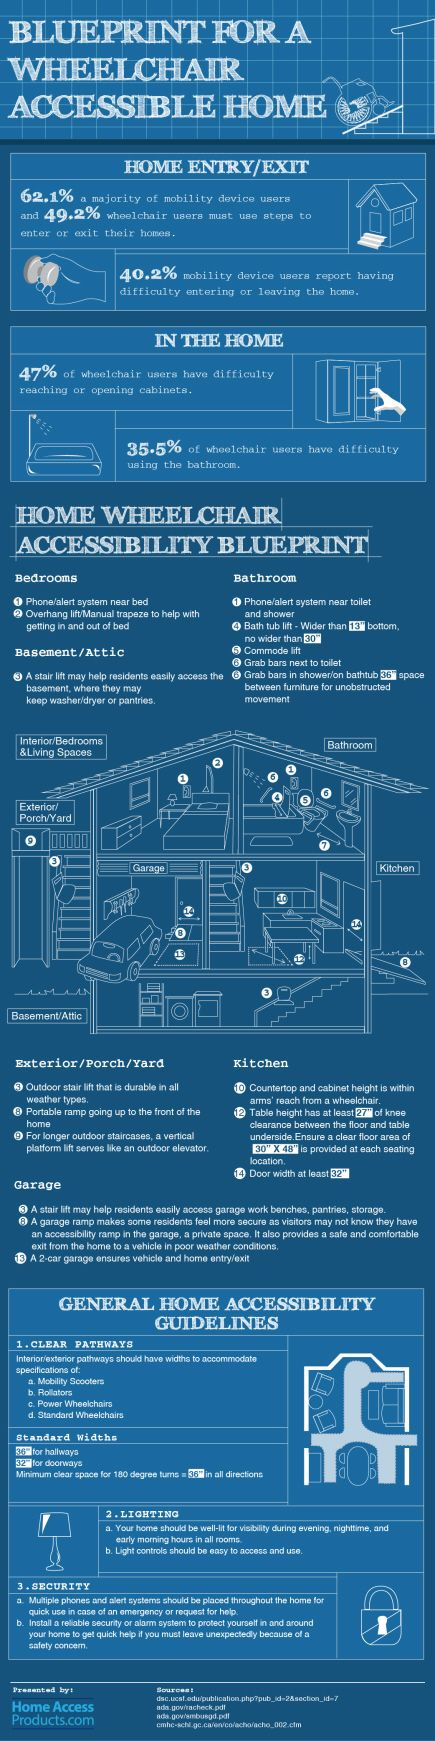 Blueprint for a Wheelchair Accessible Home - INFOGRAPHIC - Two Classy Chics